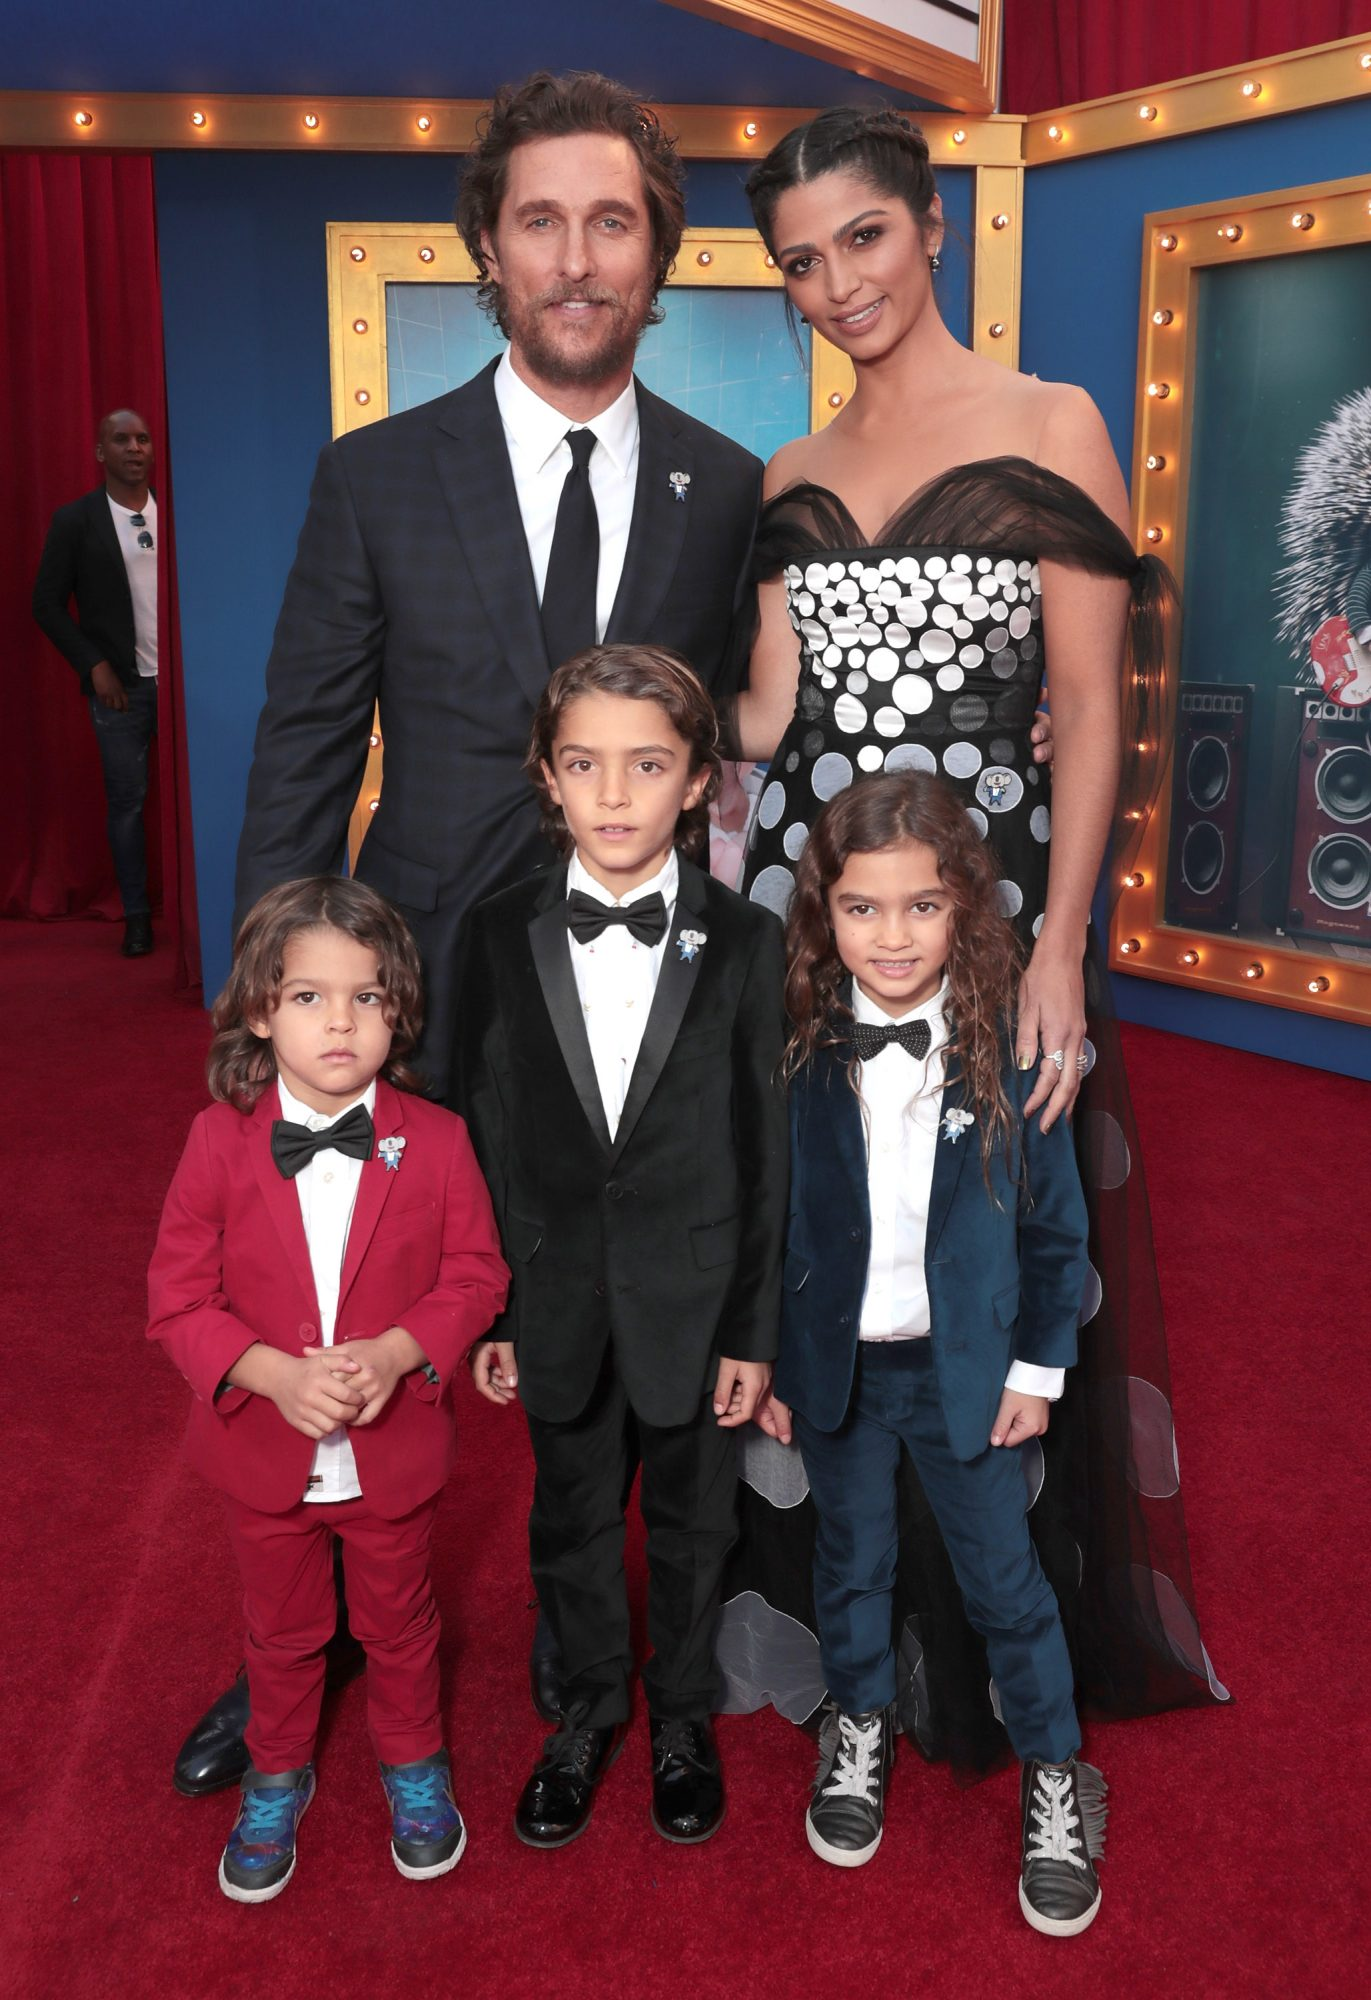 Matthew McConaughey, Camila Alves and family attend the premiere Of Universal Pictures' 'Sing' on December 3, 2016 in Los Angeles, California.